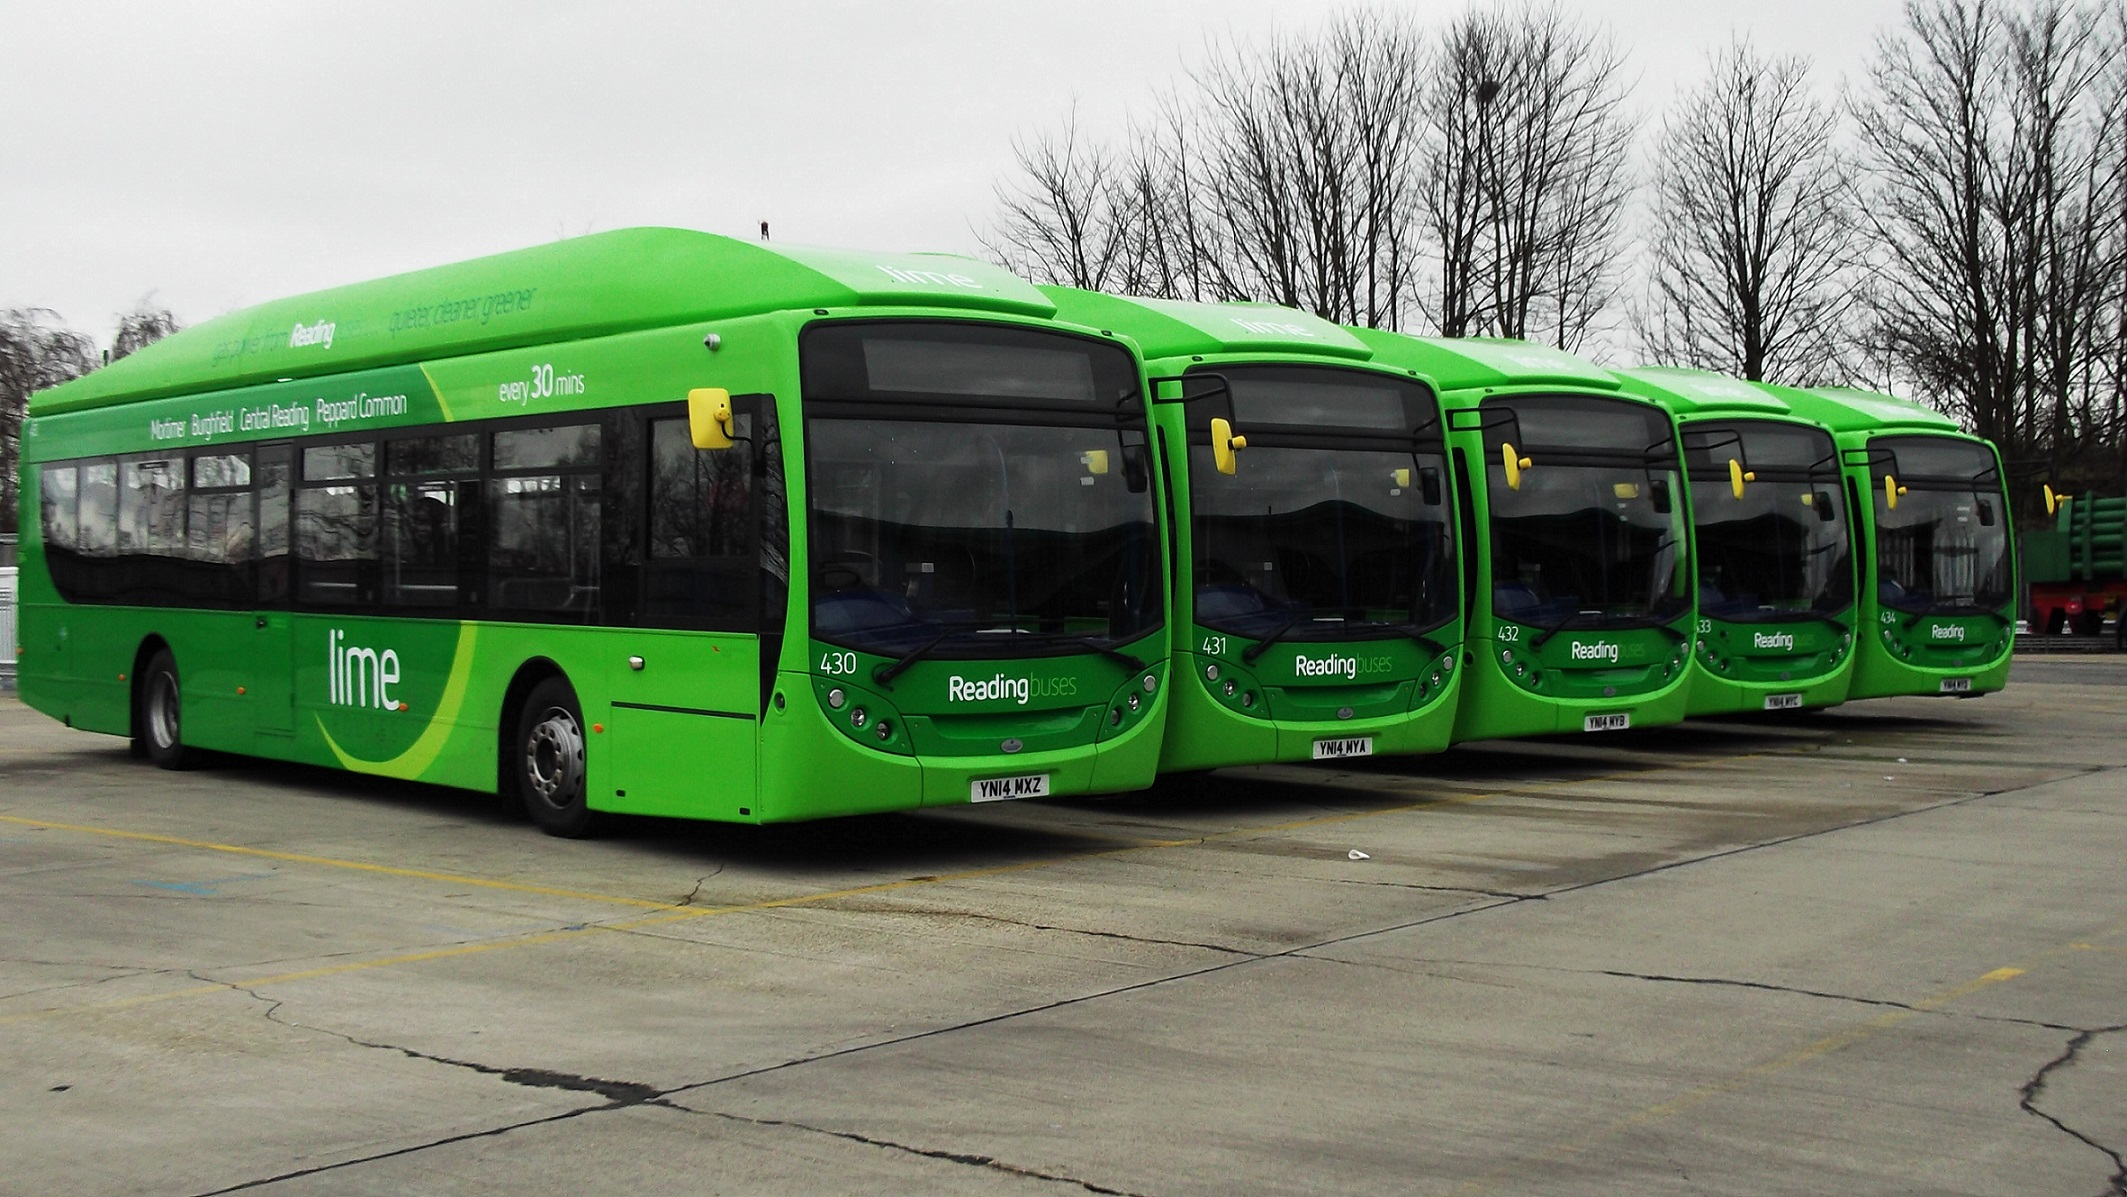 PRESS RELEASE: Biomethane 'only Practical Way To Decarbonise Large Vehicles'